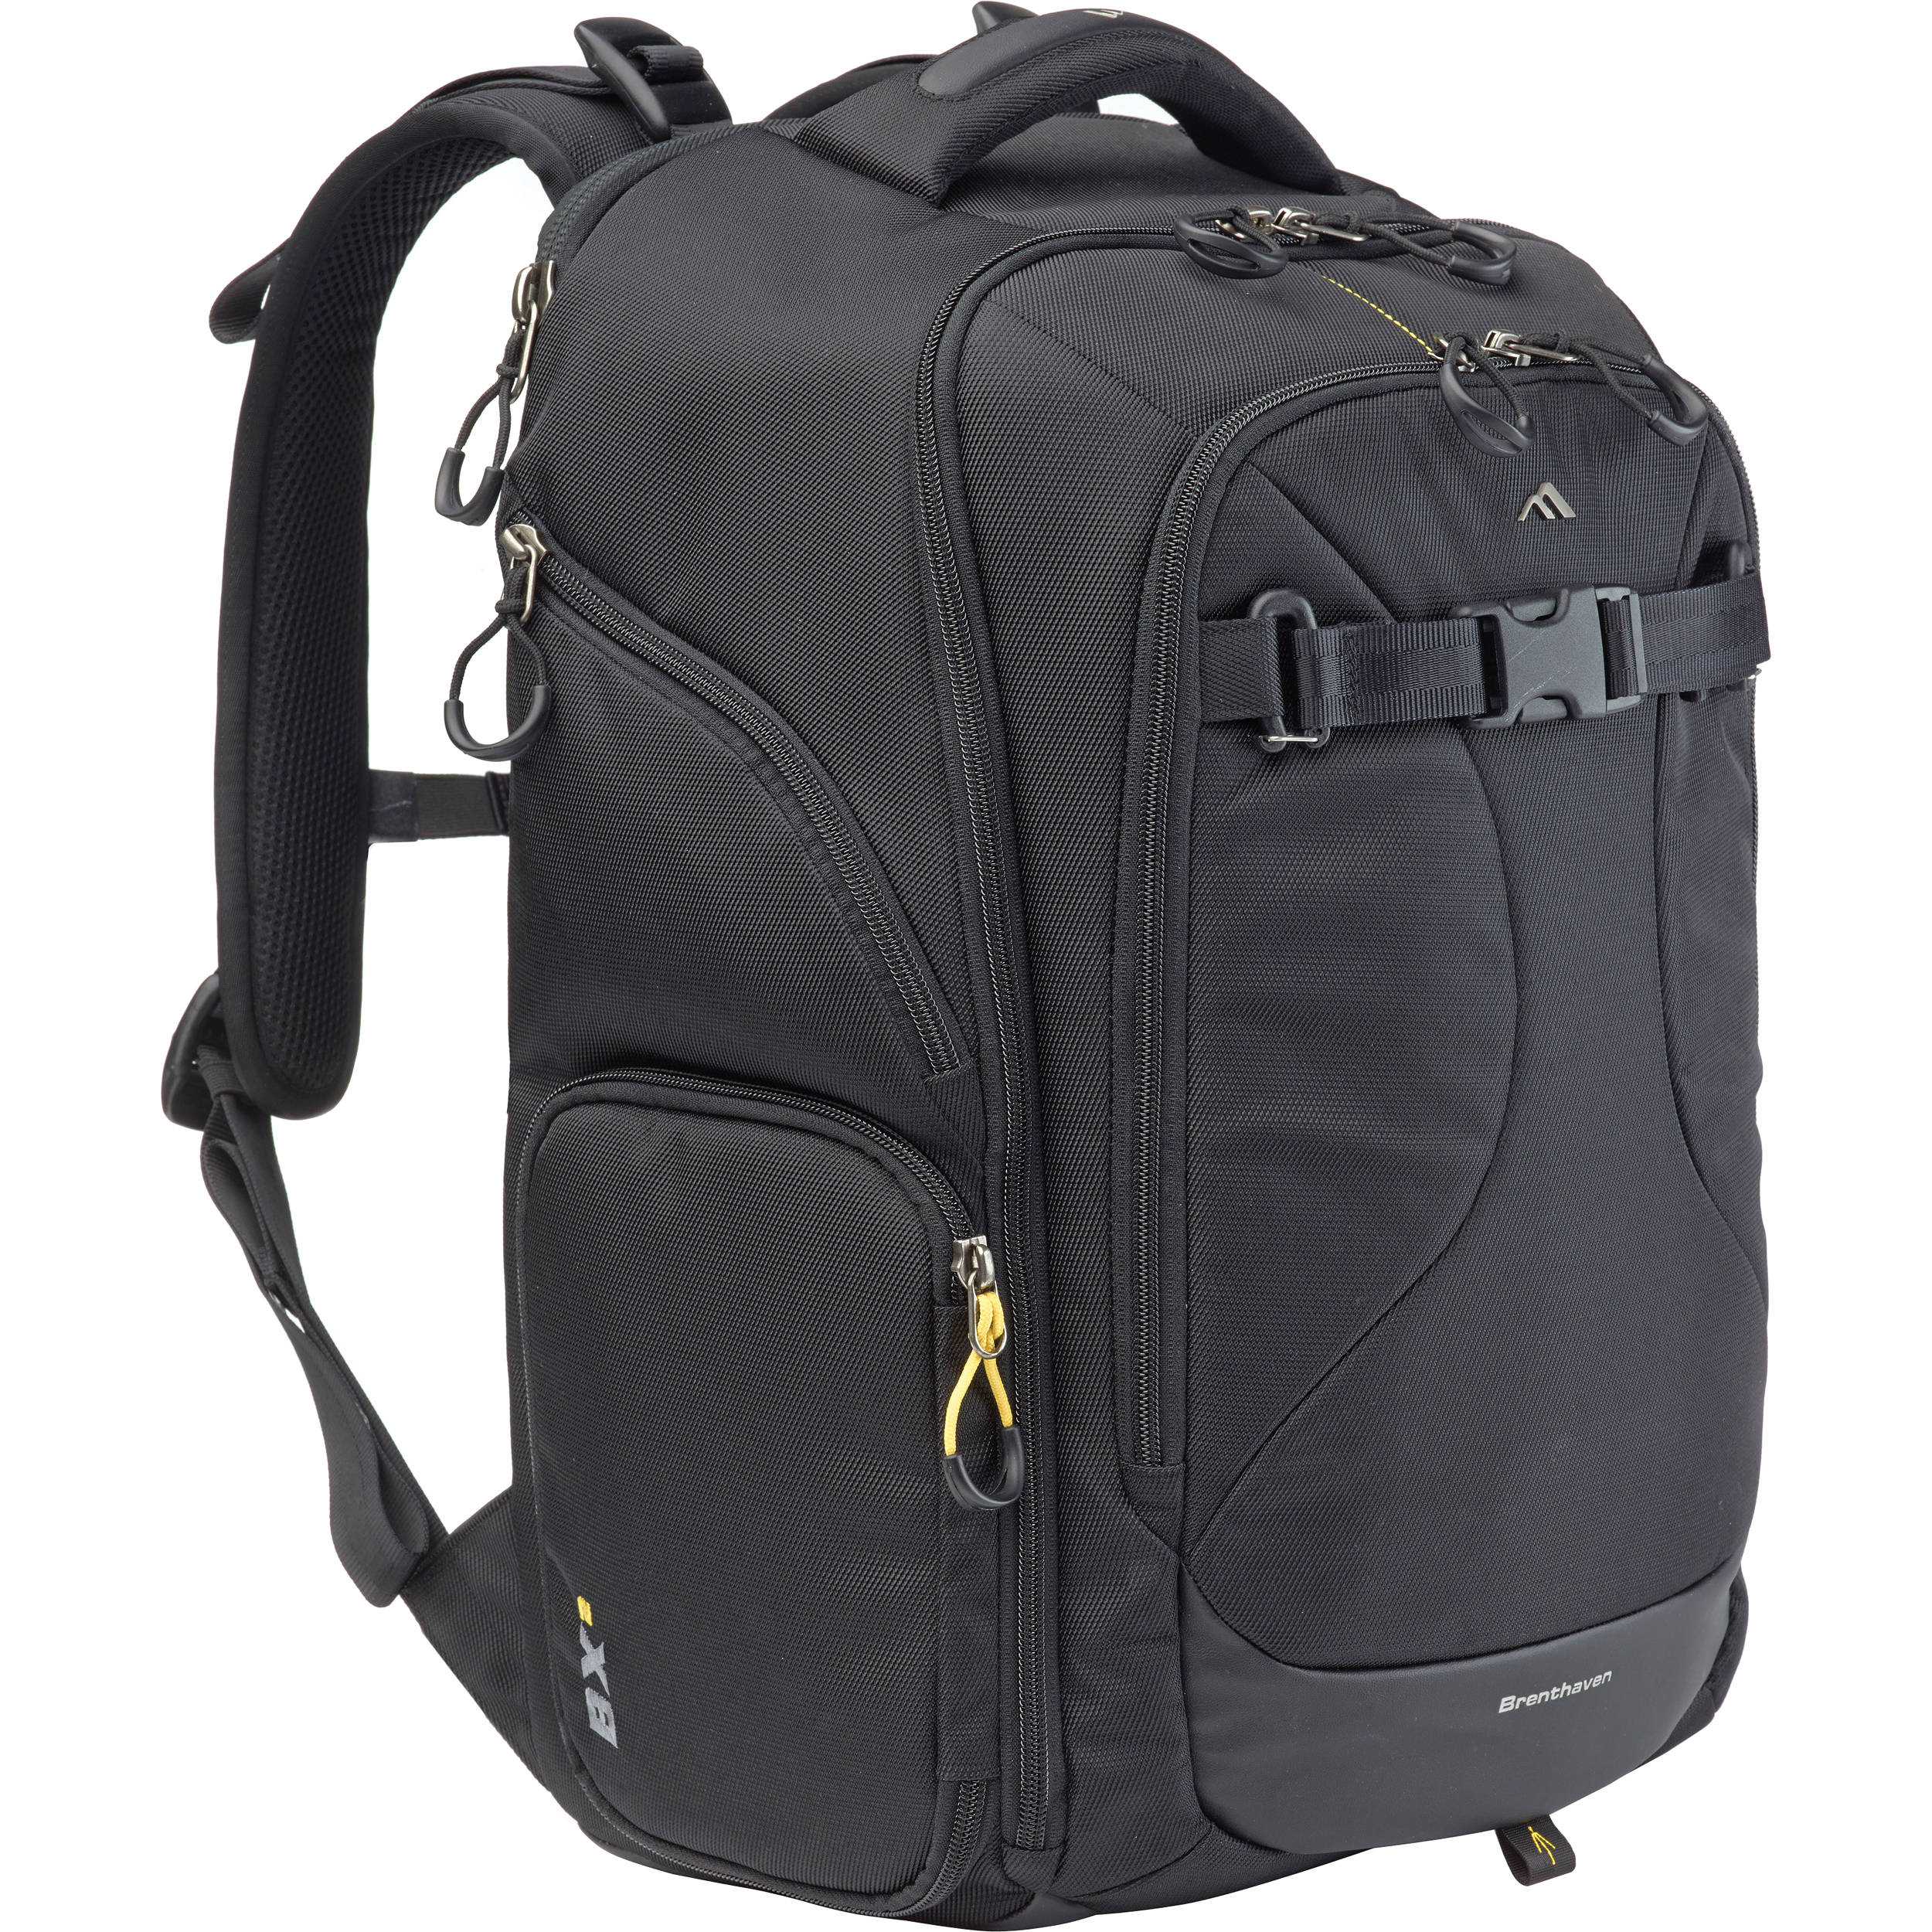 Brenthaven BX2 Pro Camera Backpack 1708 B&H Photo Video